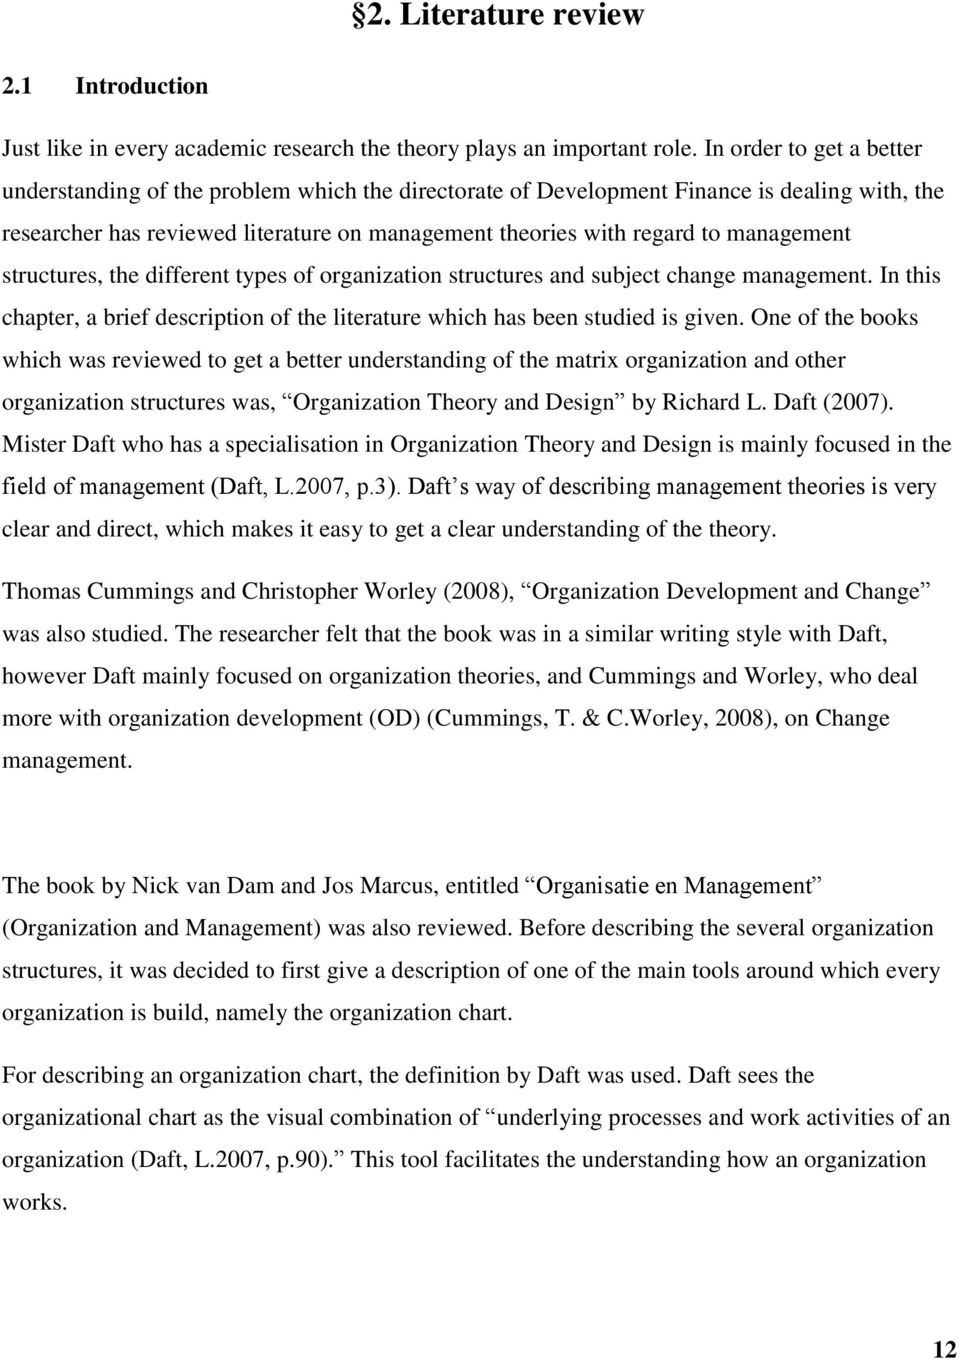 management structures, the different types of organization structures and subject change management. In this chapter, a brief description of the literature which has been studied is given.